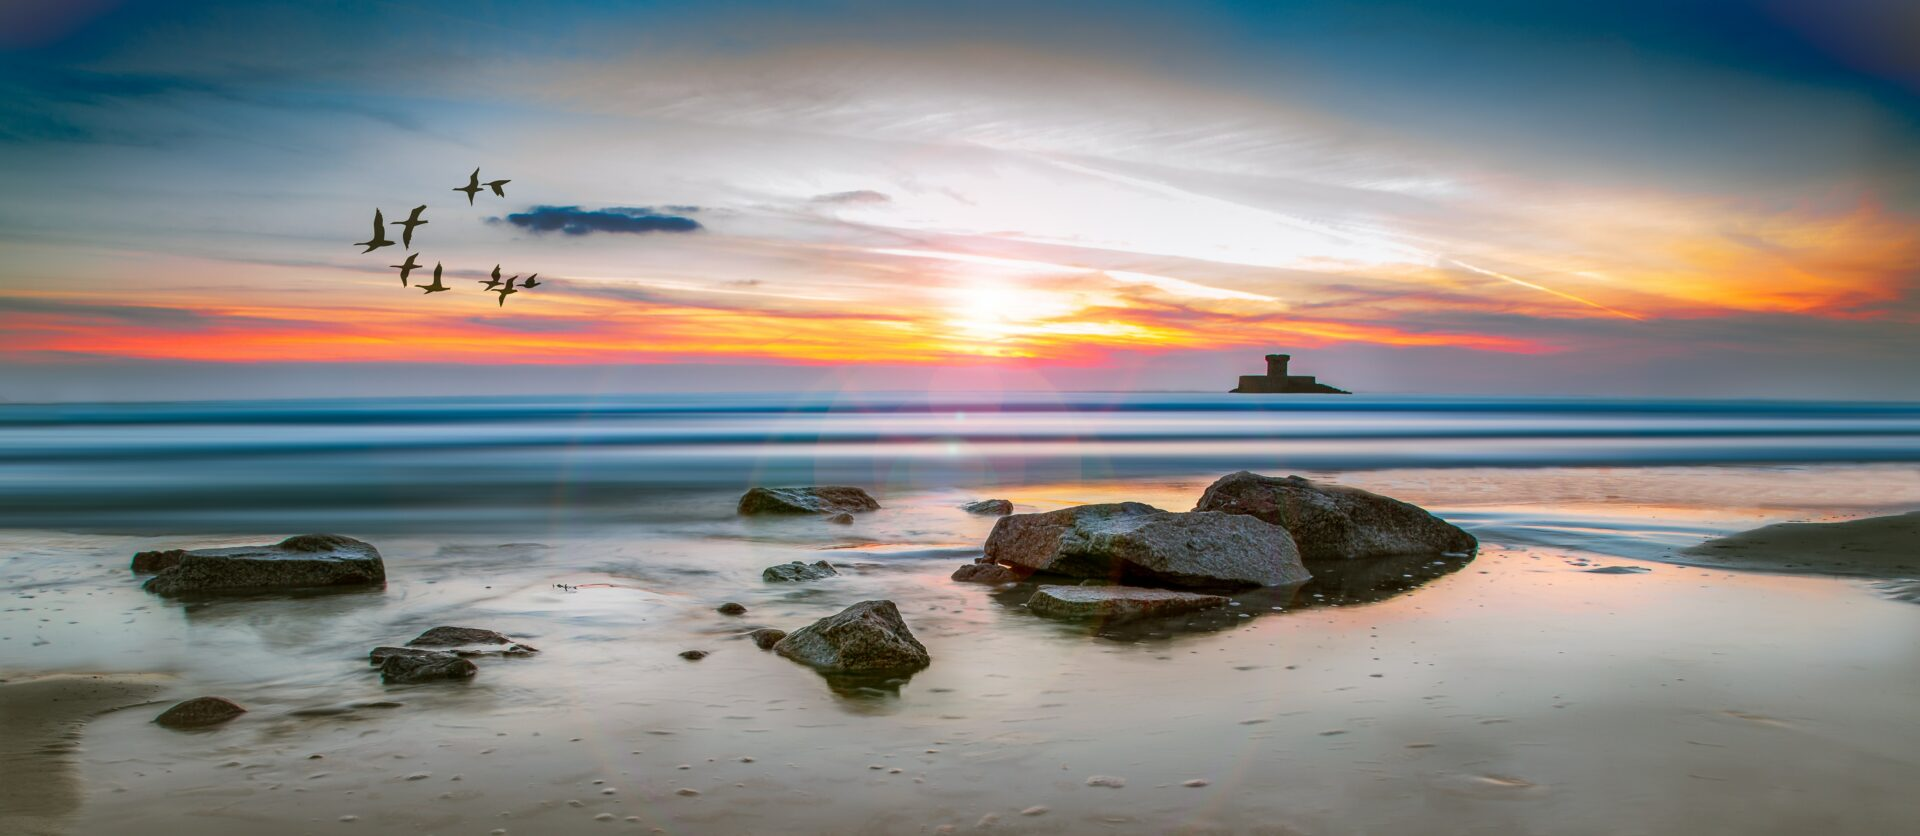 sea-rocks-surrounded-by-body-of-water-high-saturated-639078